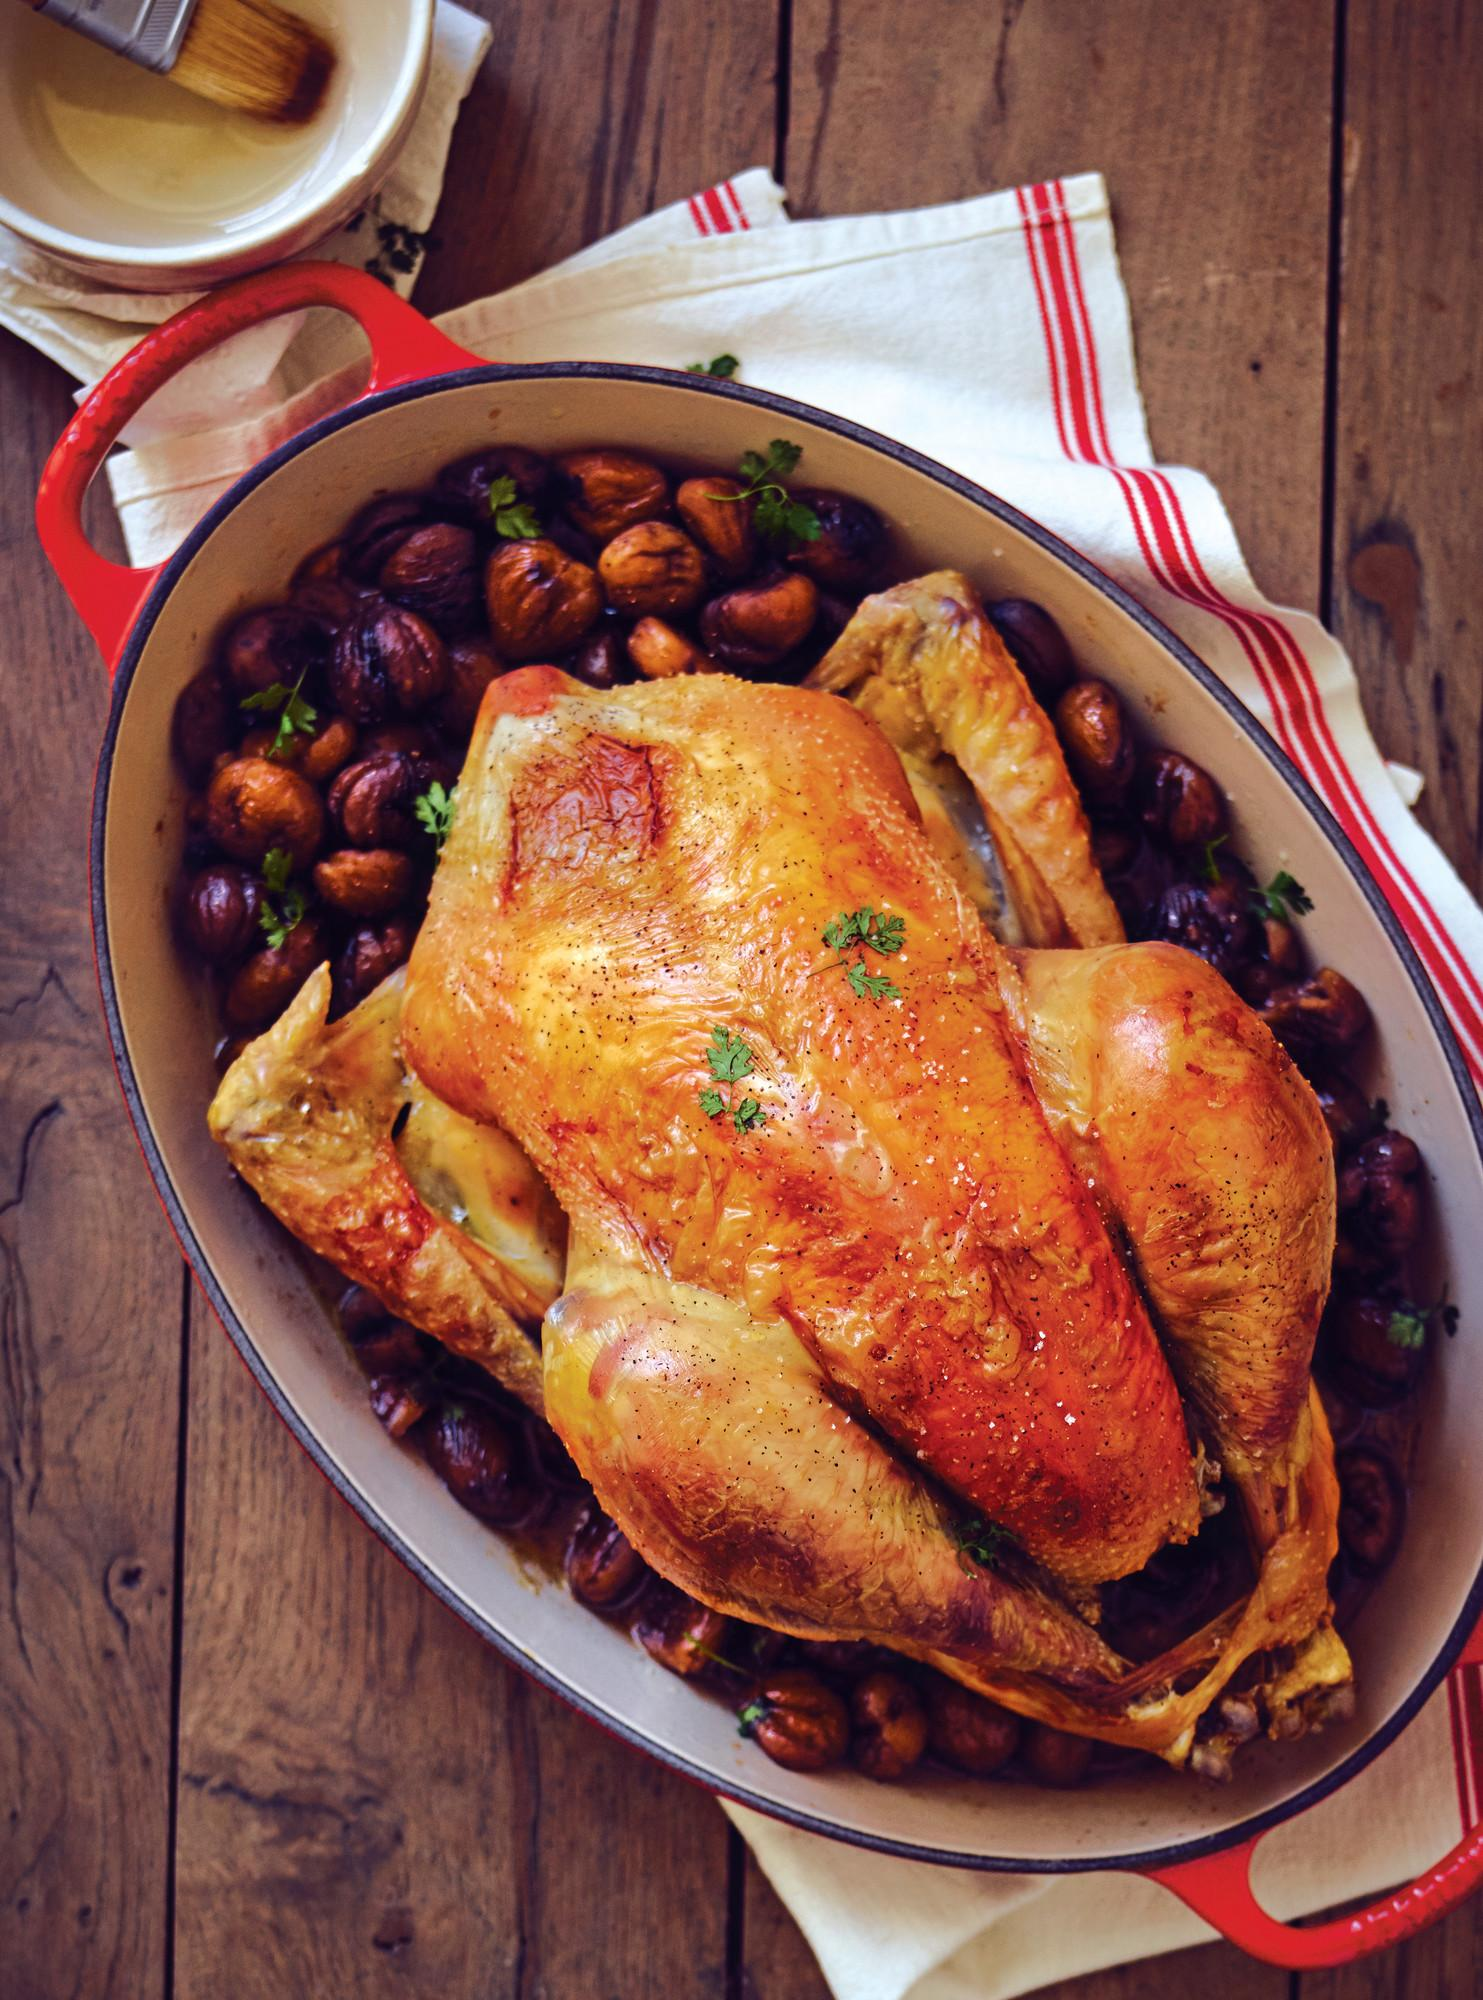 large capacity le creuset with roasted turkey inside